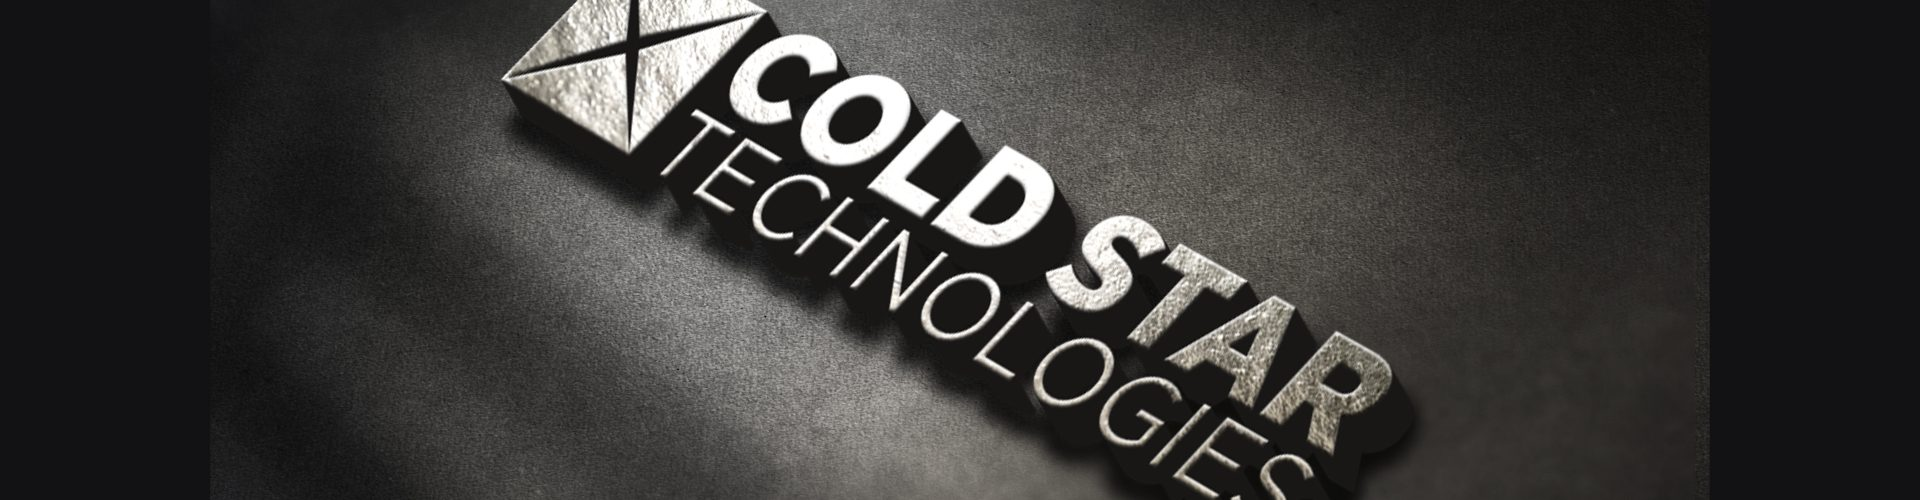 cold star tech logo dark